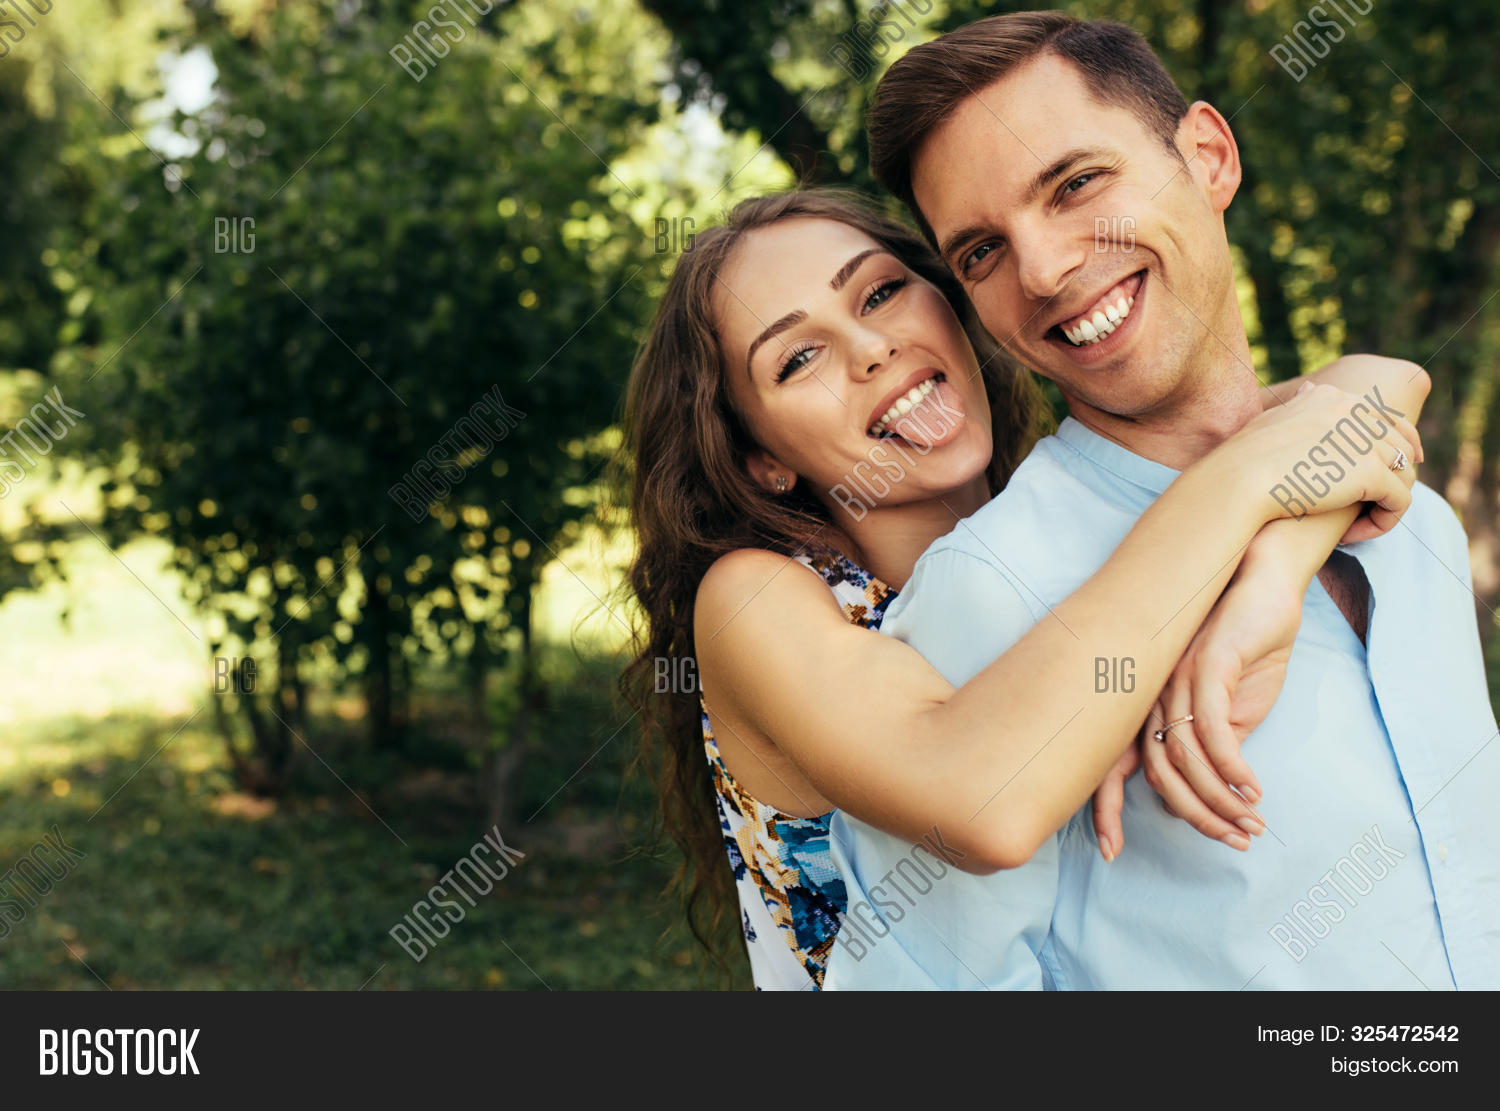 adult,beautiful,boyfriend,casual,caucasian,cheerful,couple,cute,date,dating,embrace,embracing,family,female,friend,friendship,fun,girl,girlfriend,happiness,happy,holiday,hug,joy,leisure,lifestyle,love,lover,male,man,nature,outdoor,outside,park,people,portrait,pretty,relationship,romance,romantic,smile,smiling,summer,together,togetherness,two,valentine,woman,women,young